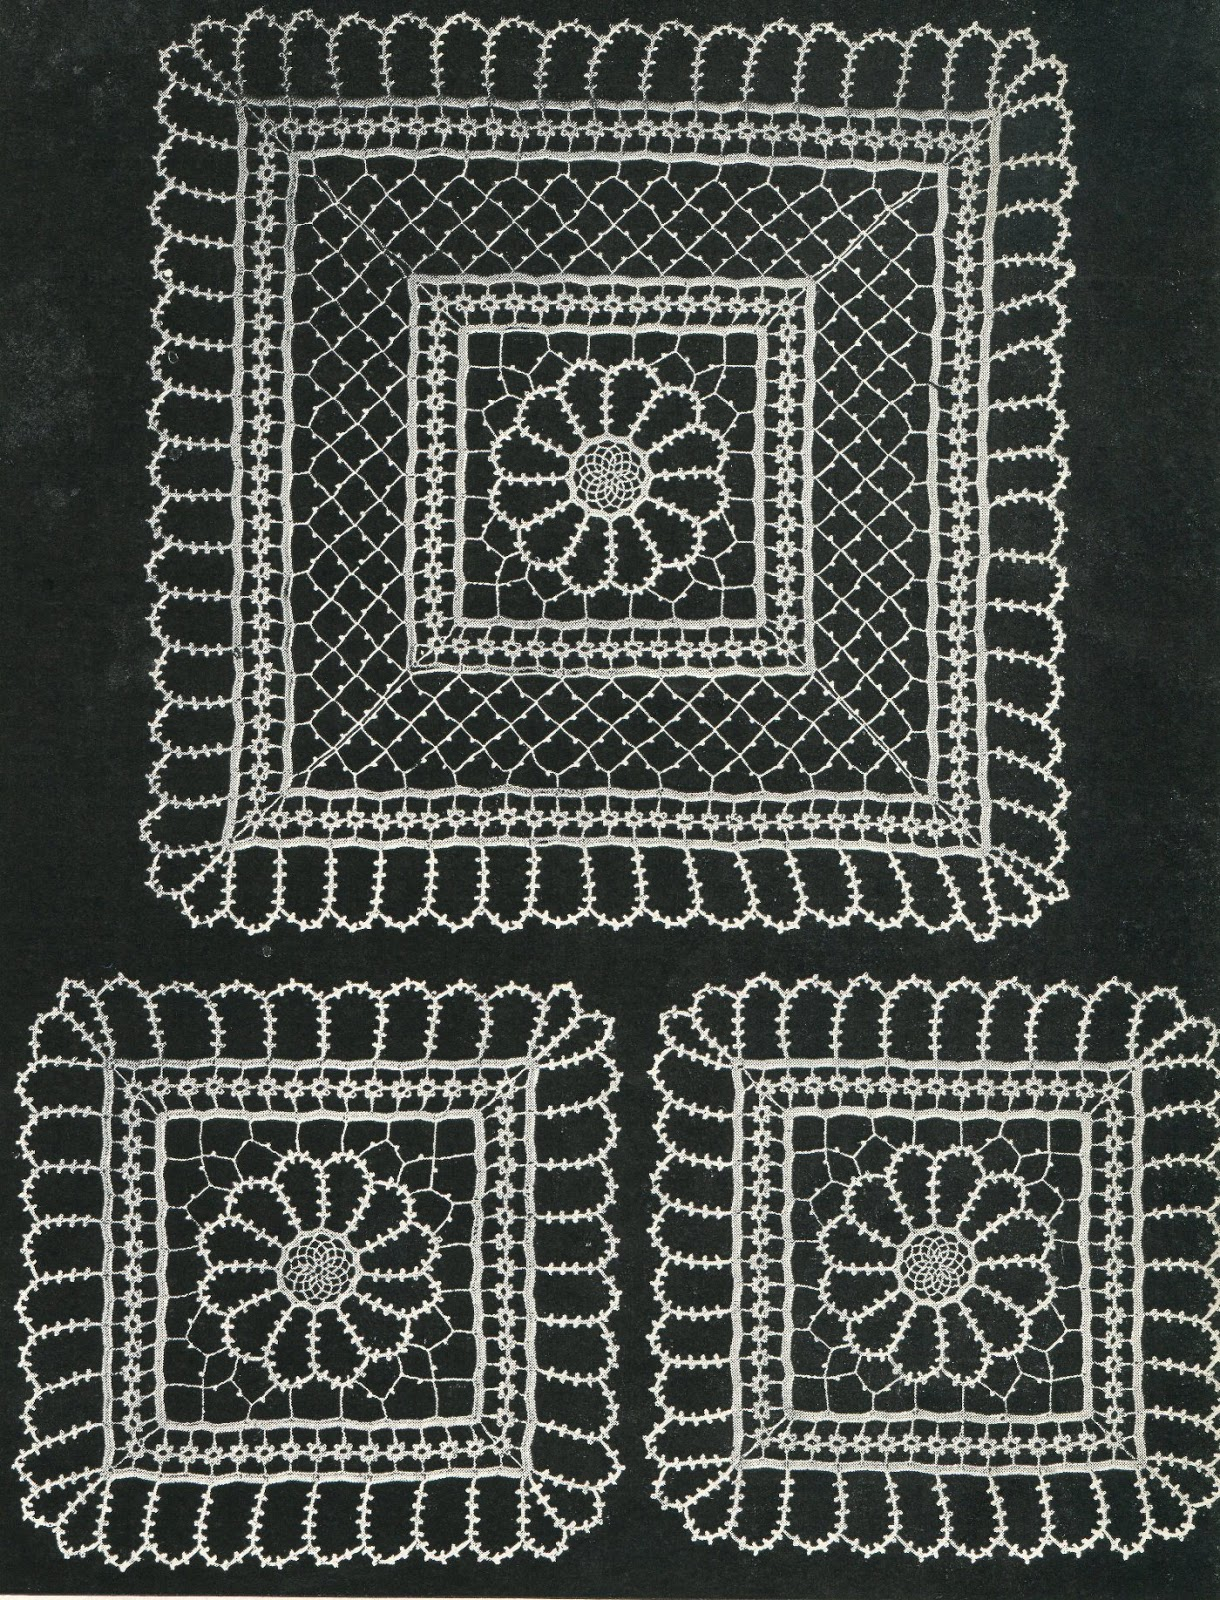 Crocheted Lace Pattern From Star Book Of Crochet Designs No1 1935